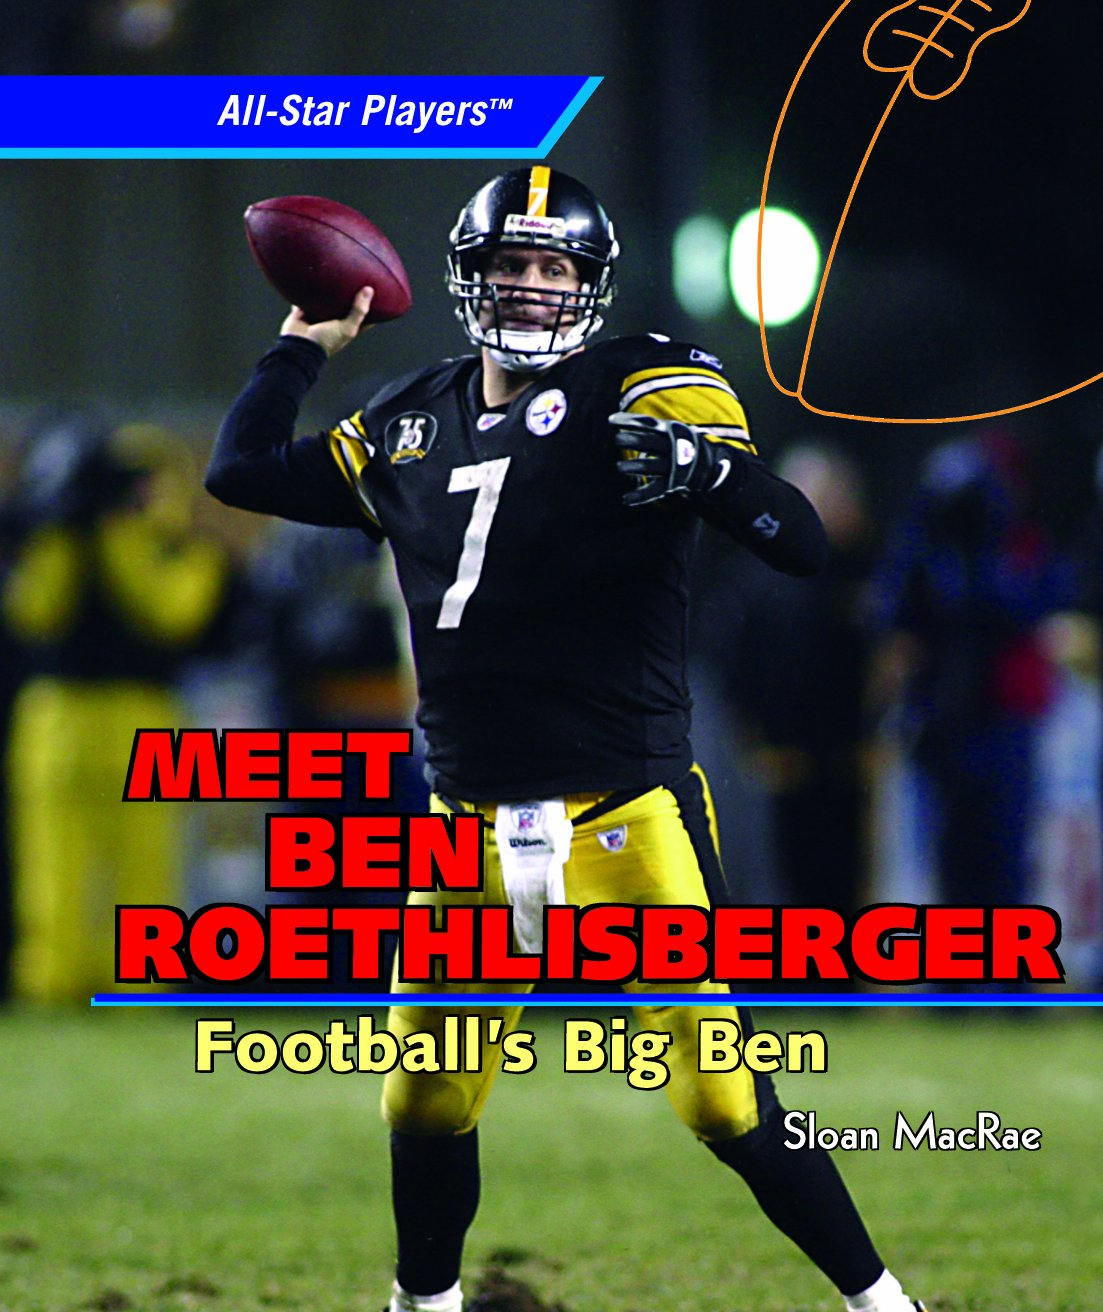 Meet Ben Roethlisberger: Football's Big Ben (All-Star Players)